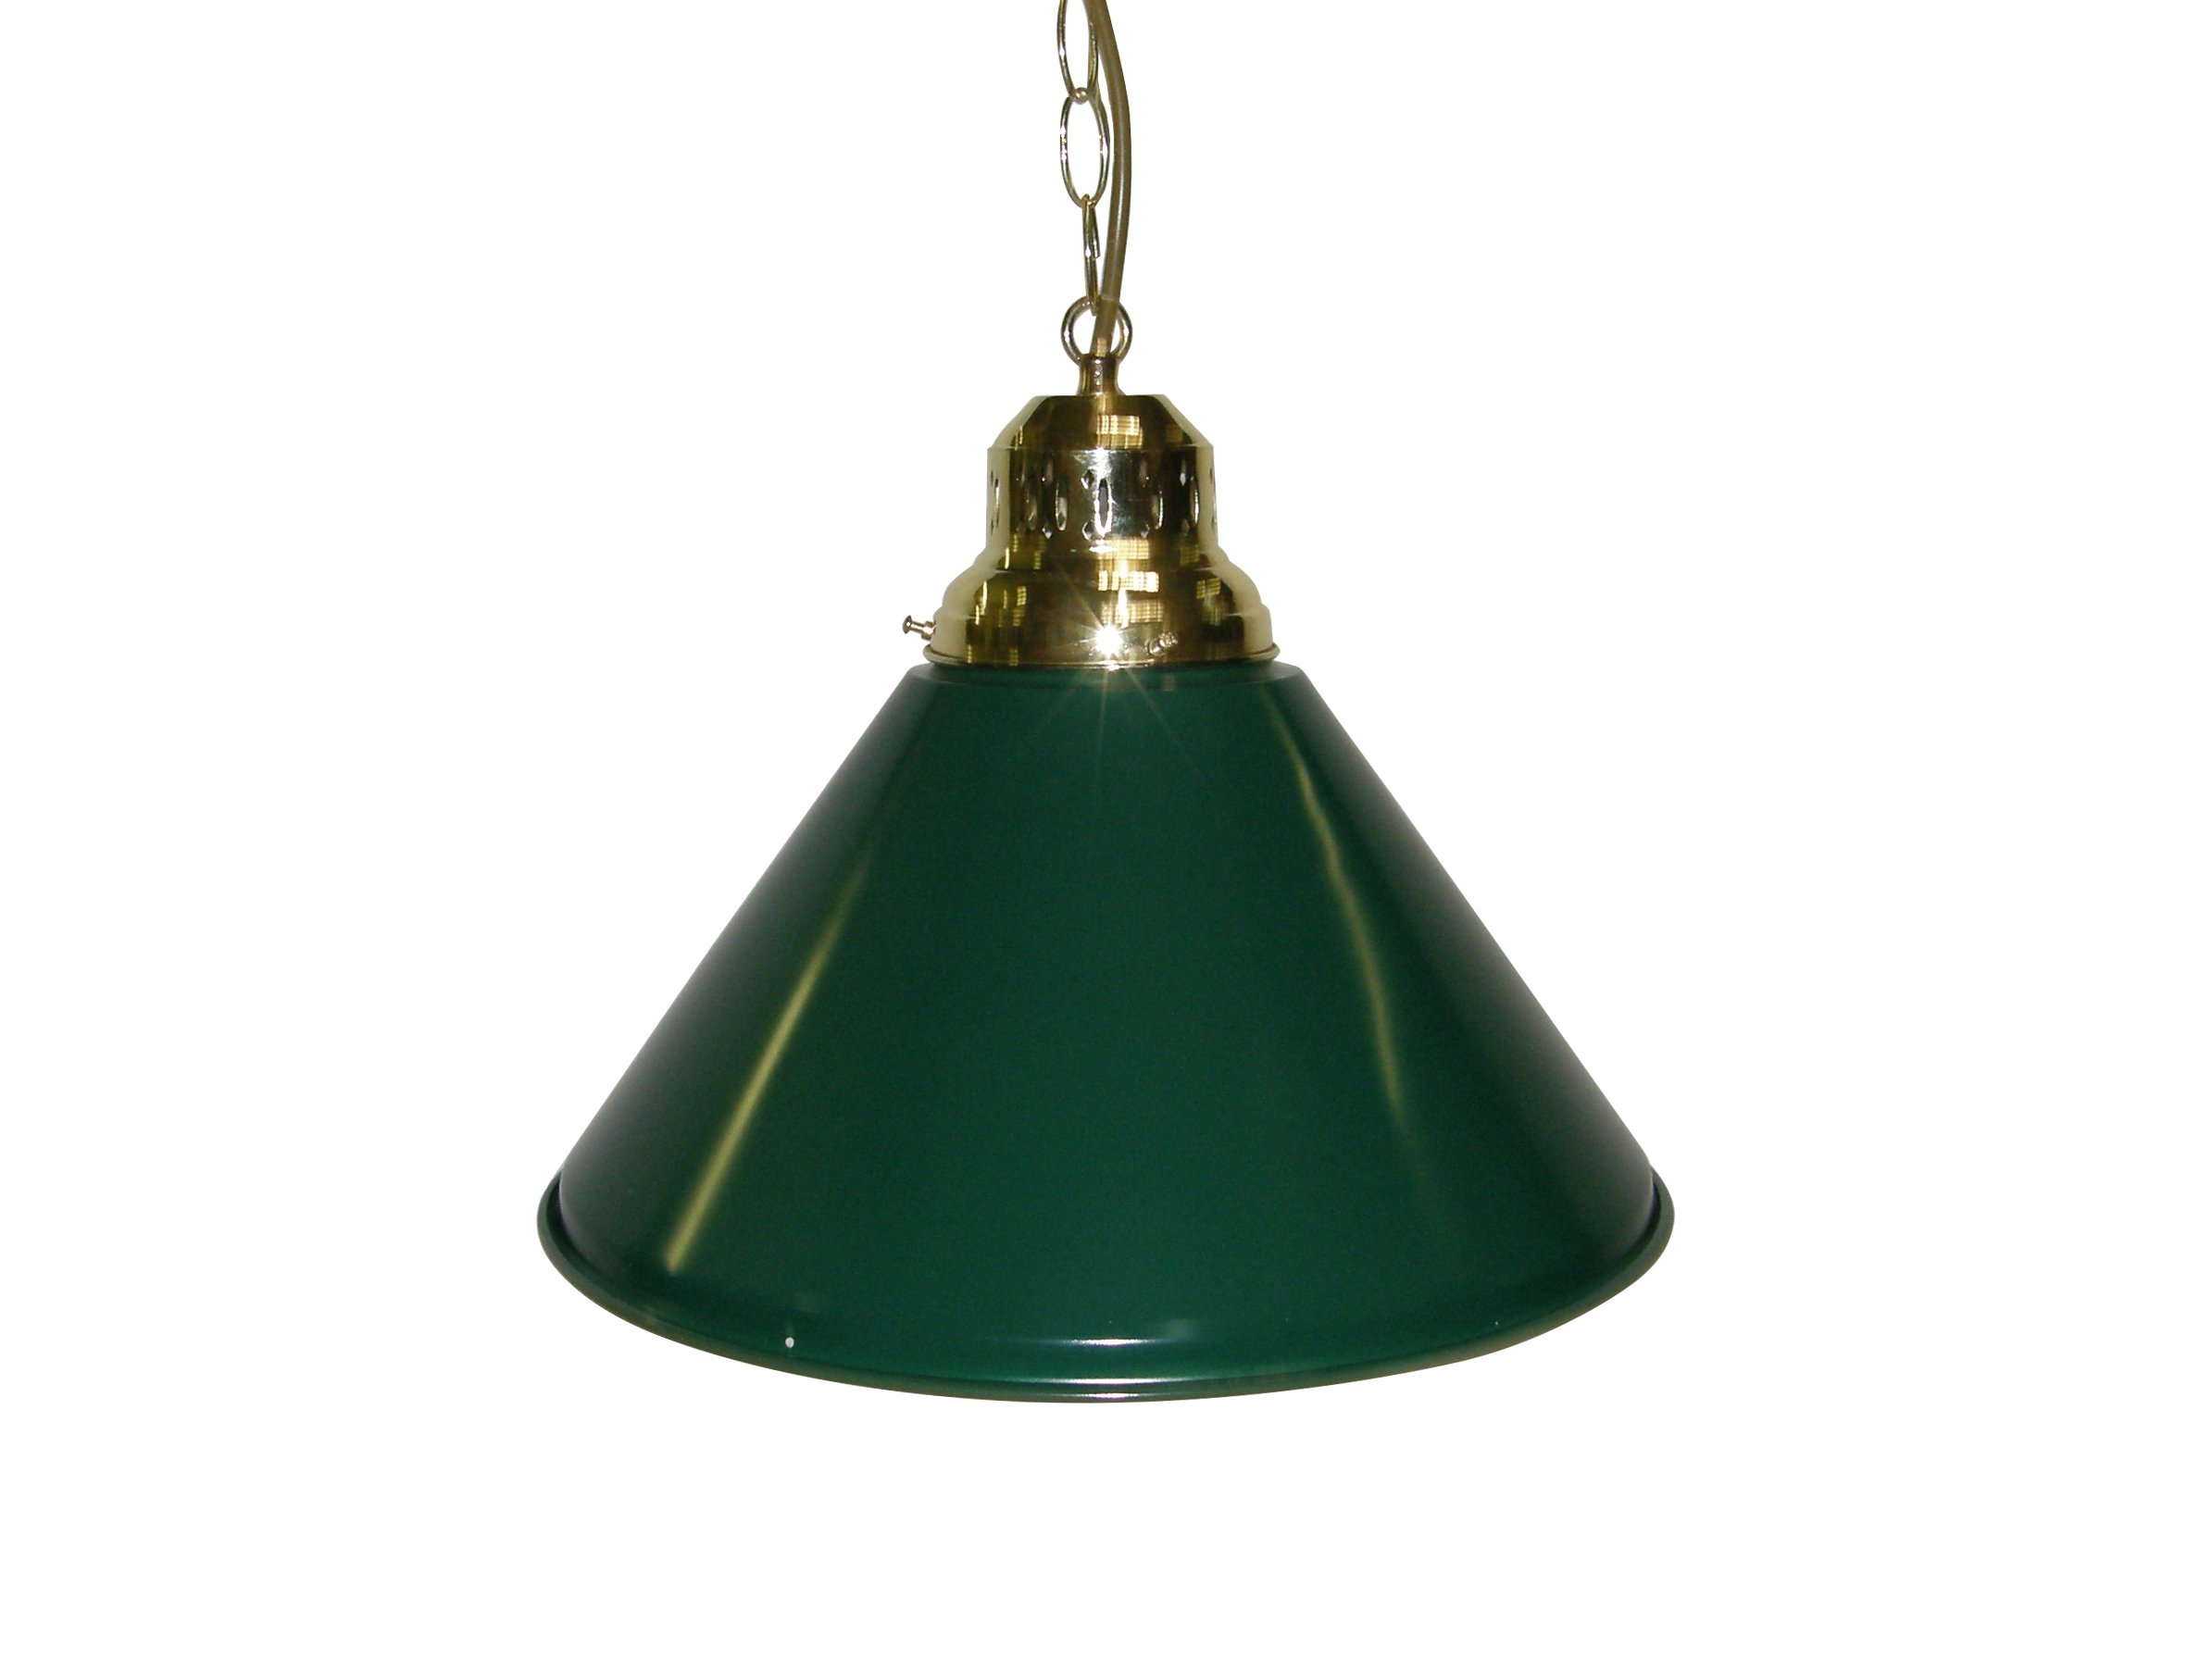 Game Room - Bar - Billiard - Pool Table Light - Pendant Brass with Green Metal Shade (Green)